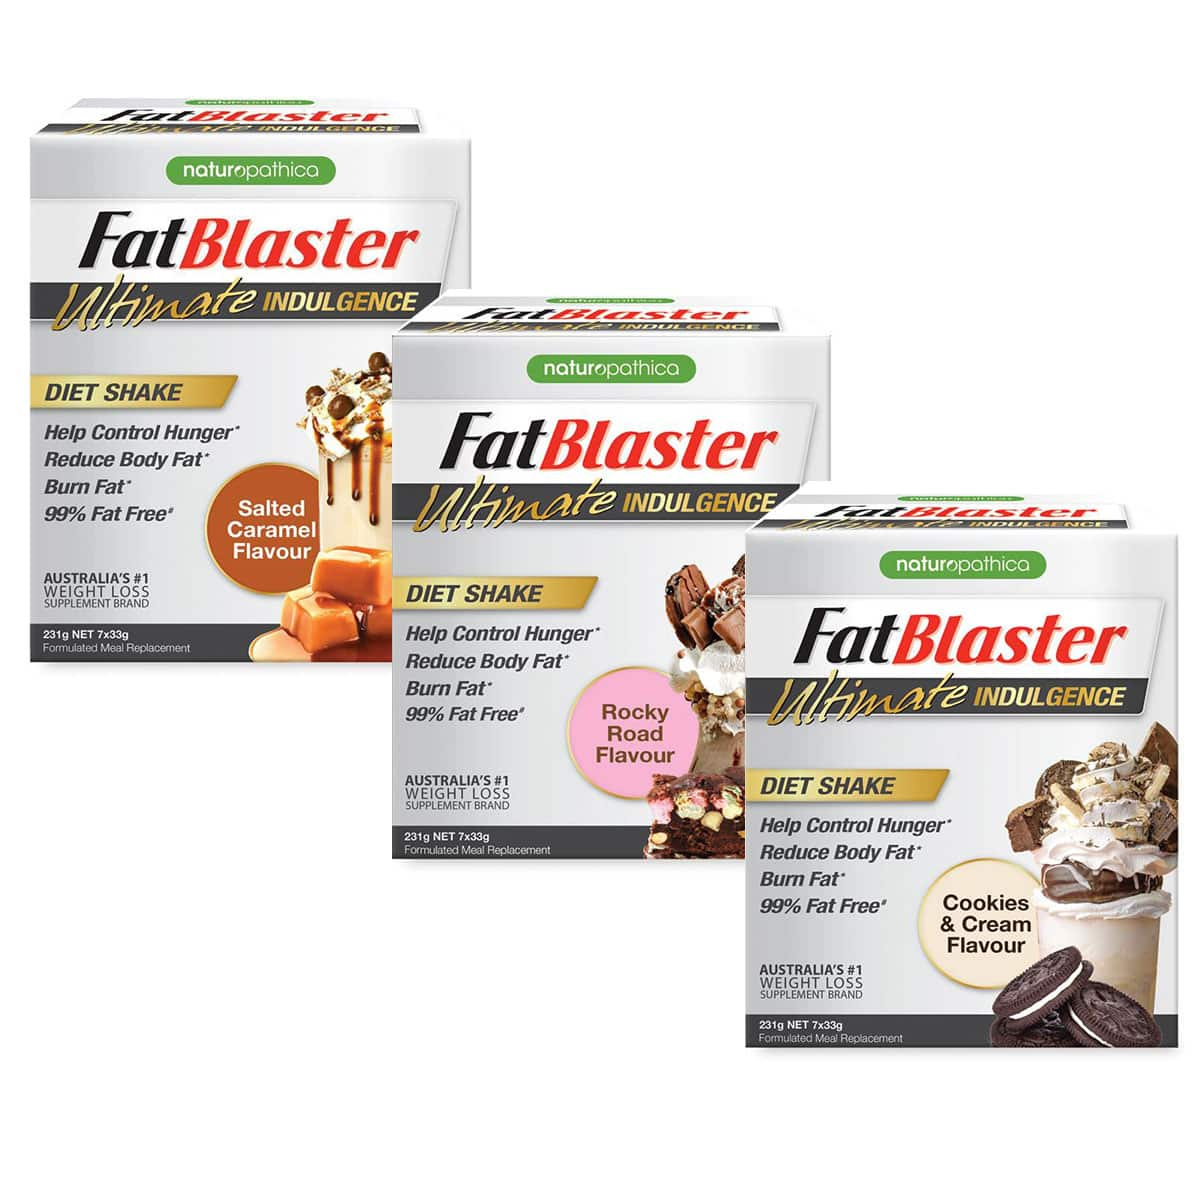 Fatblaster Ultimate Indulgence Diet Shake 231g